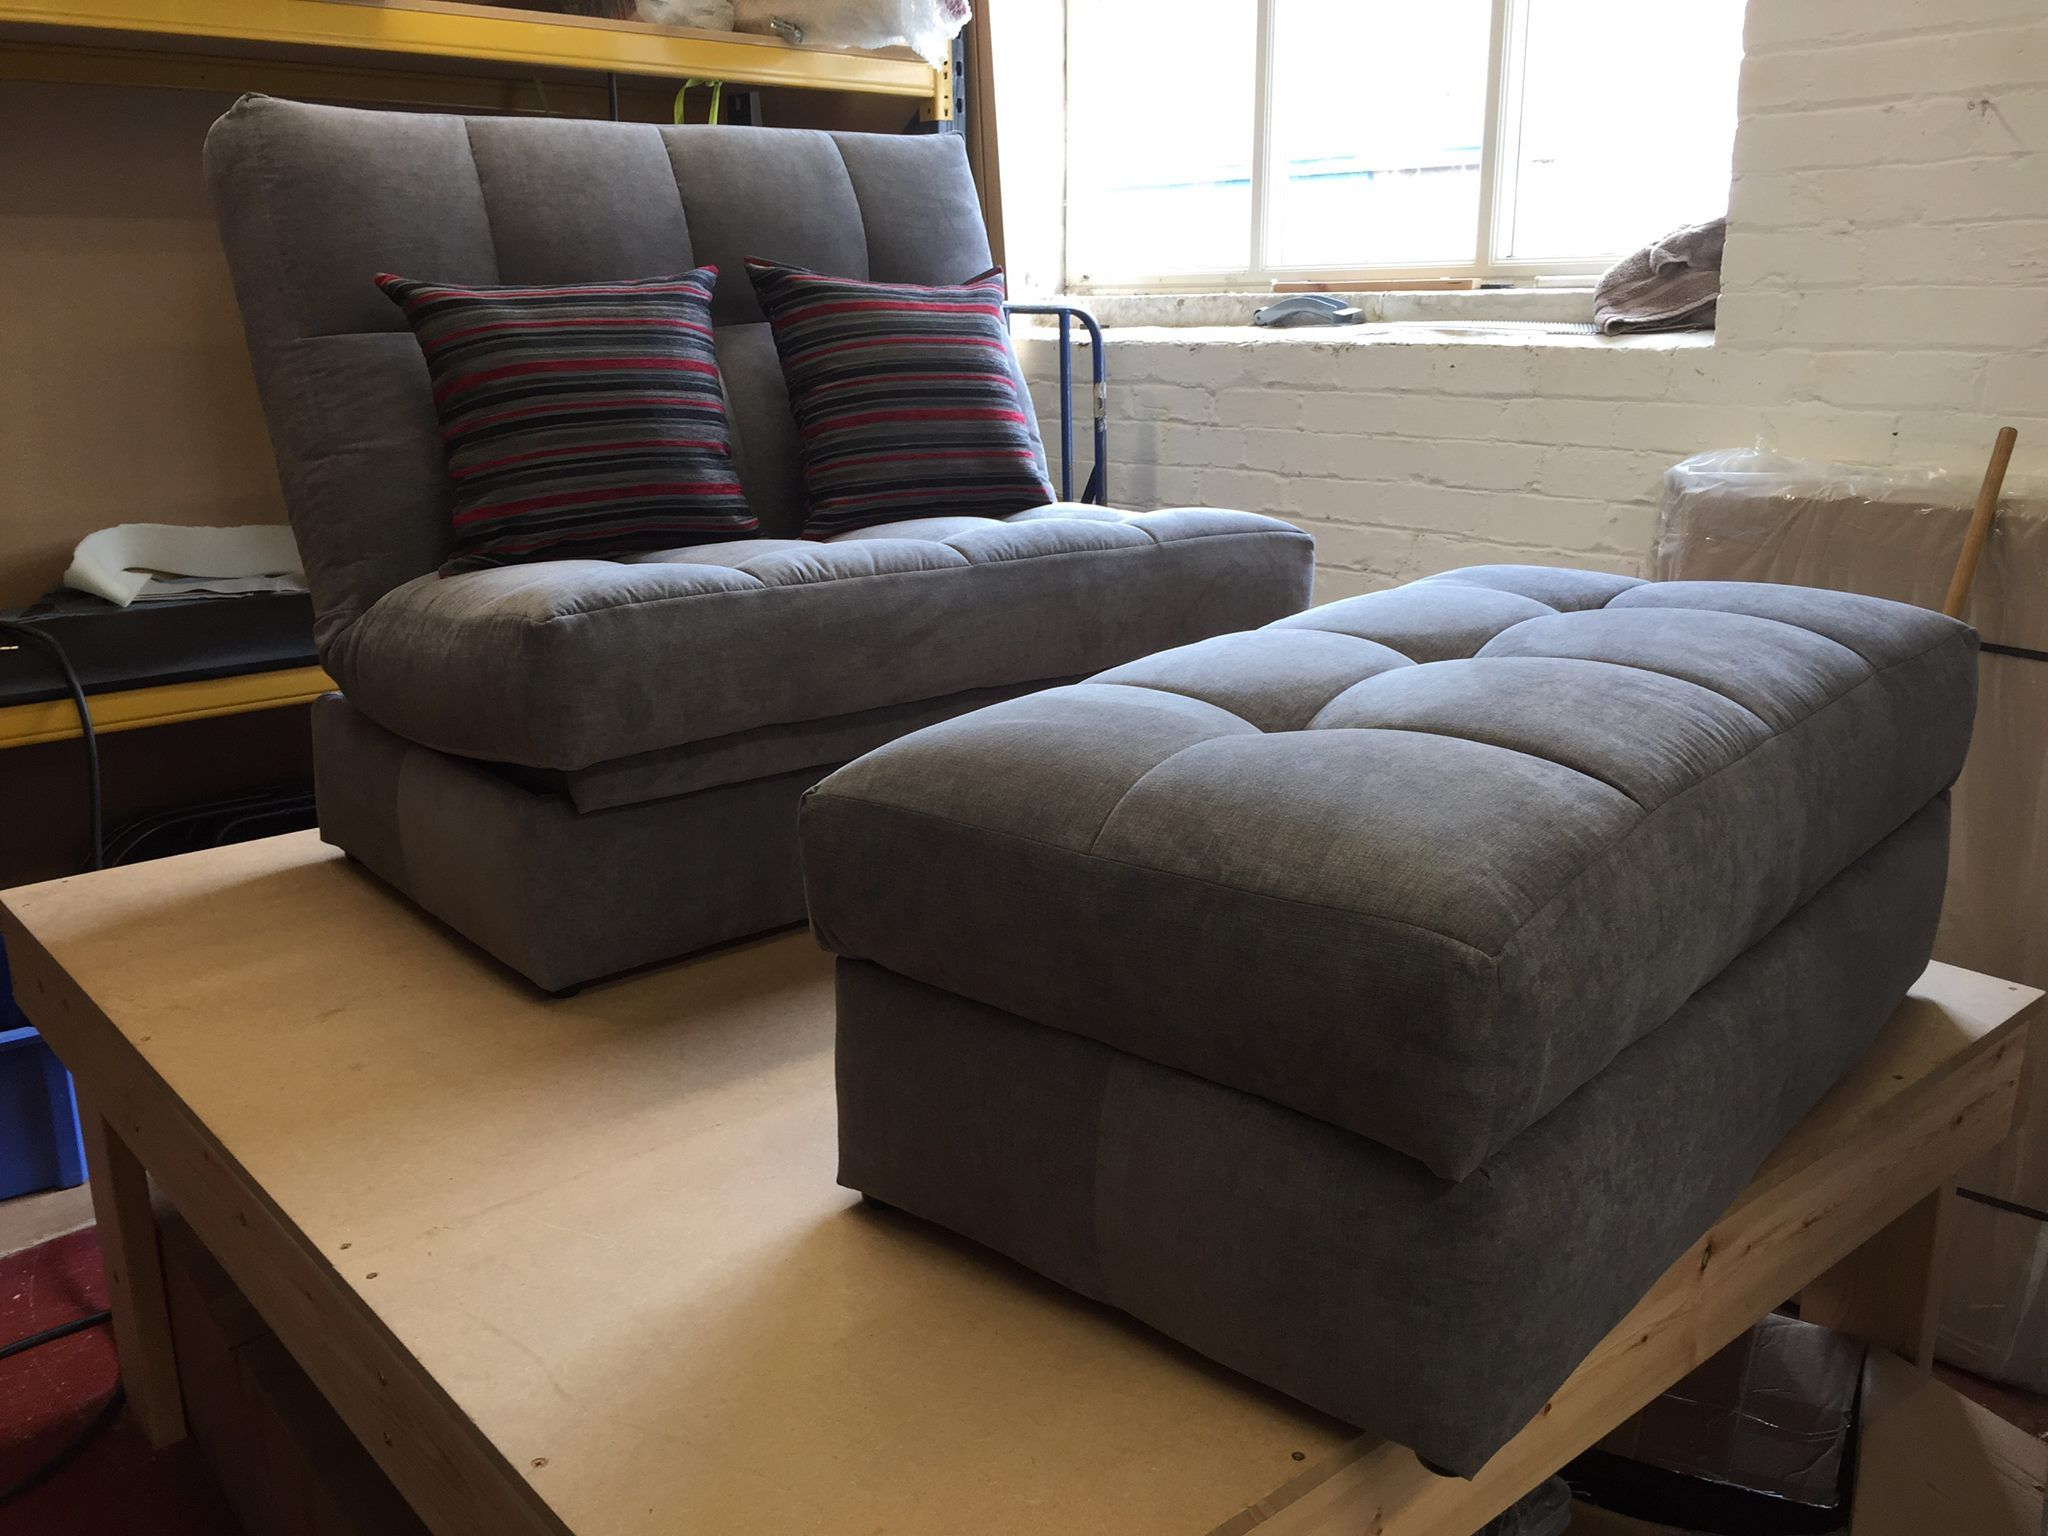 Dalton Sofa Bed Genuine Leather Sofas In South Africa Designed Specifically With Our Narrow Boat Customers